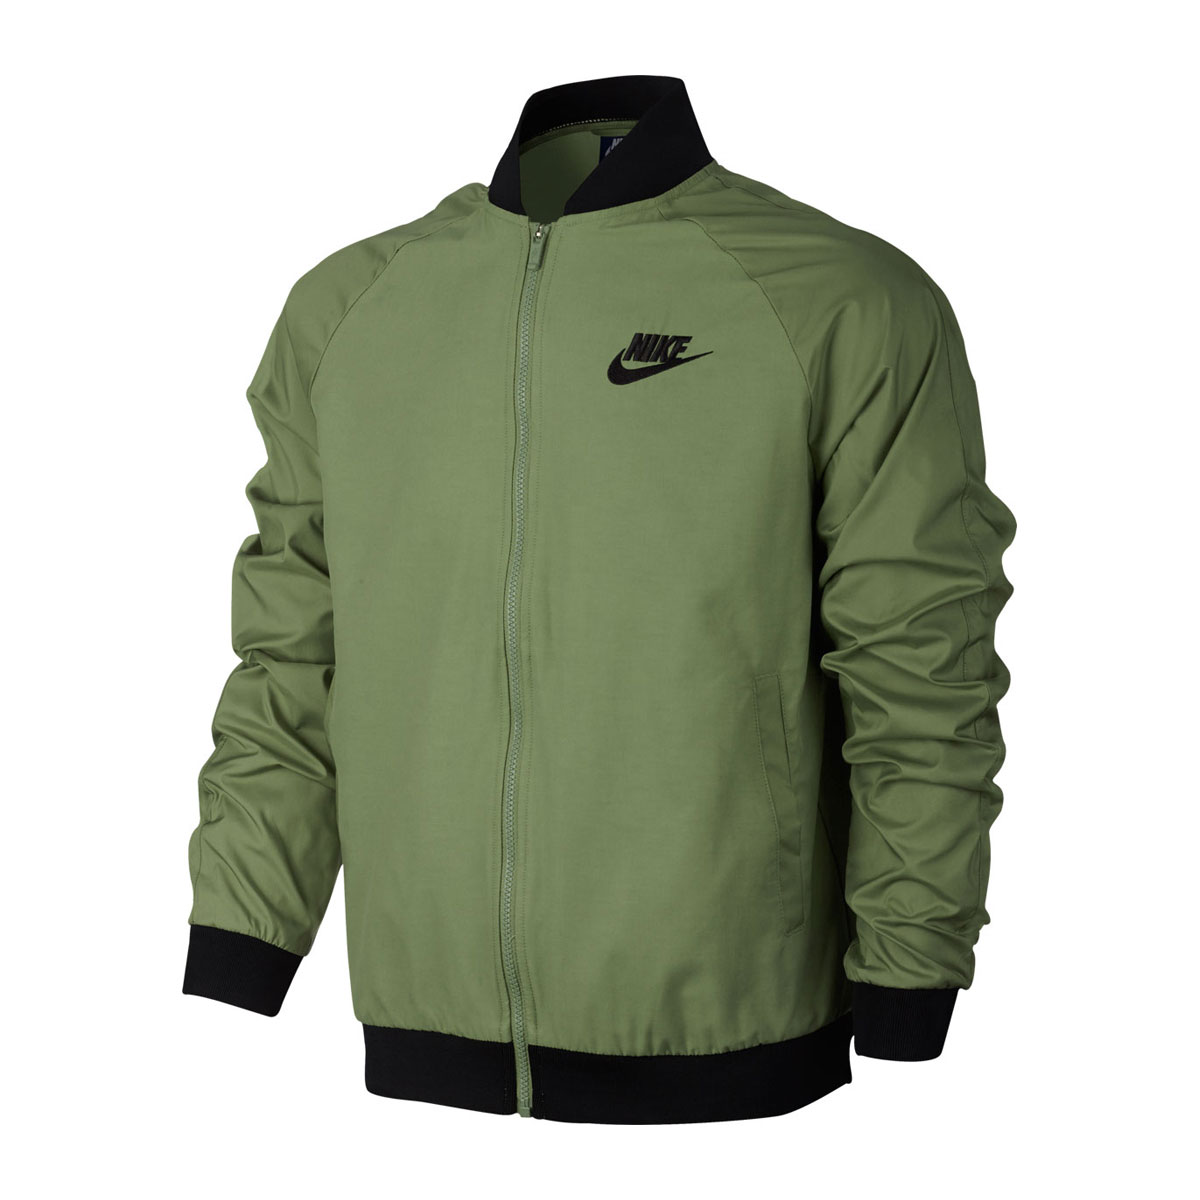 NIKE AS M NSW JKT WVN PLAYERS(2色展开)(耐克AS人NSW茄克乌,播放器播放器)